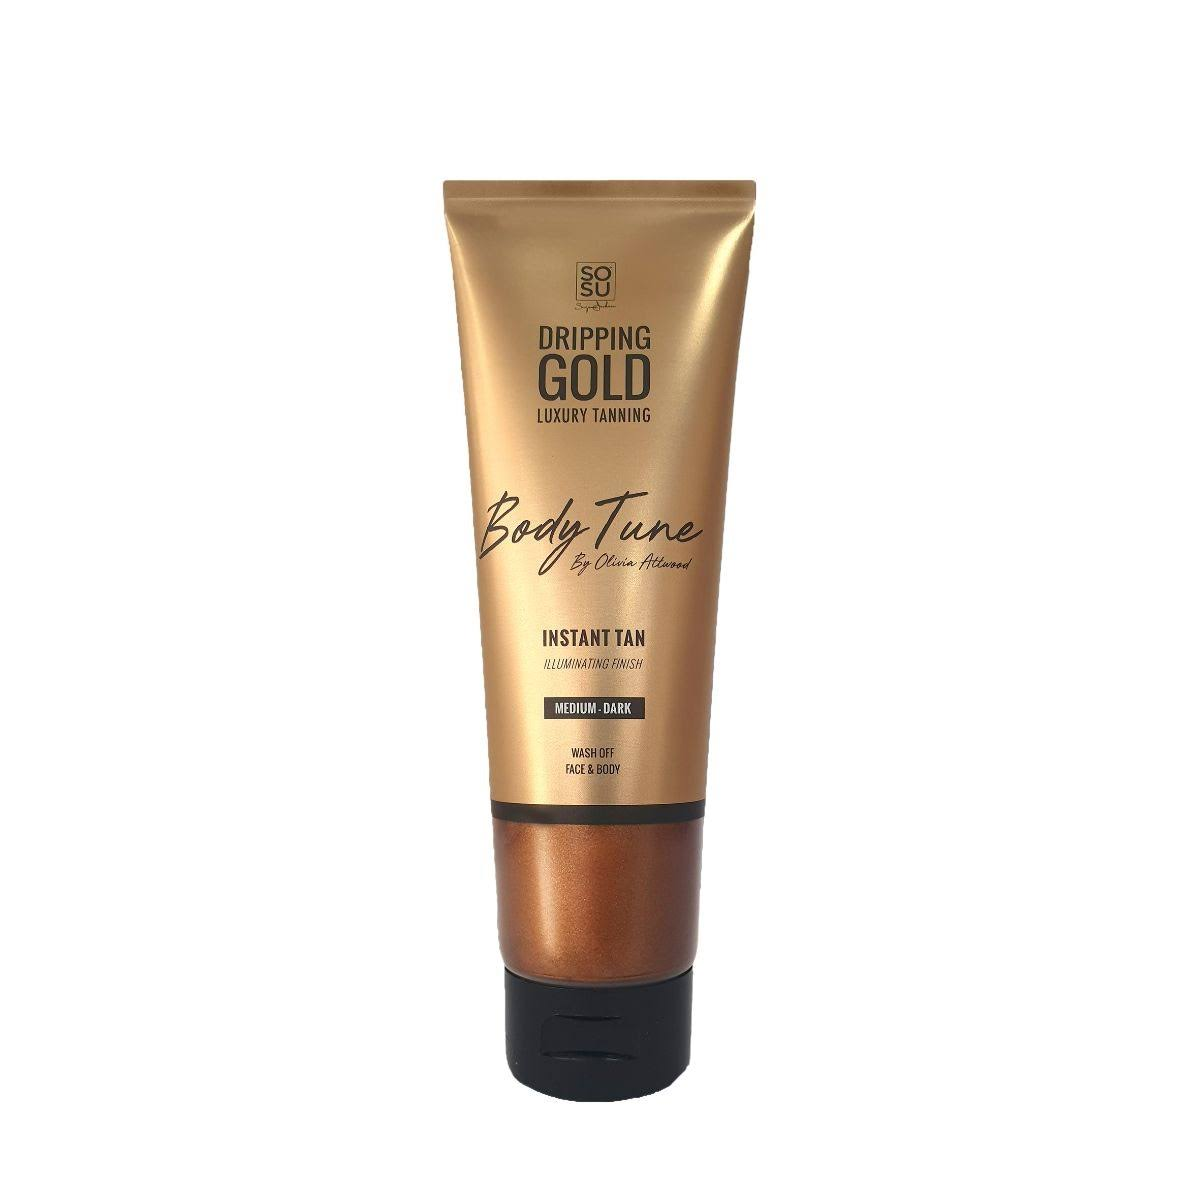 SOSU Dripping Gold Body Tune Instant Tan Medium/Dark